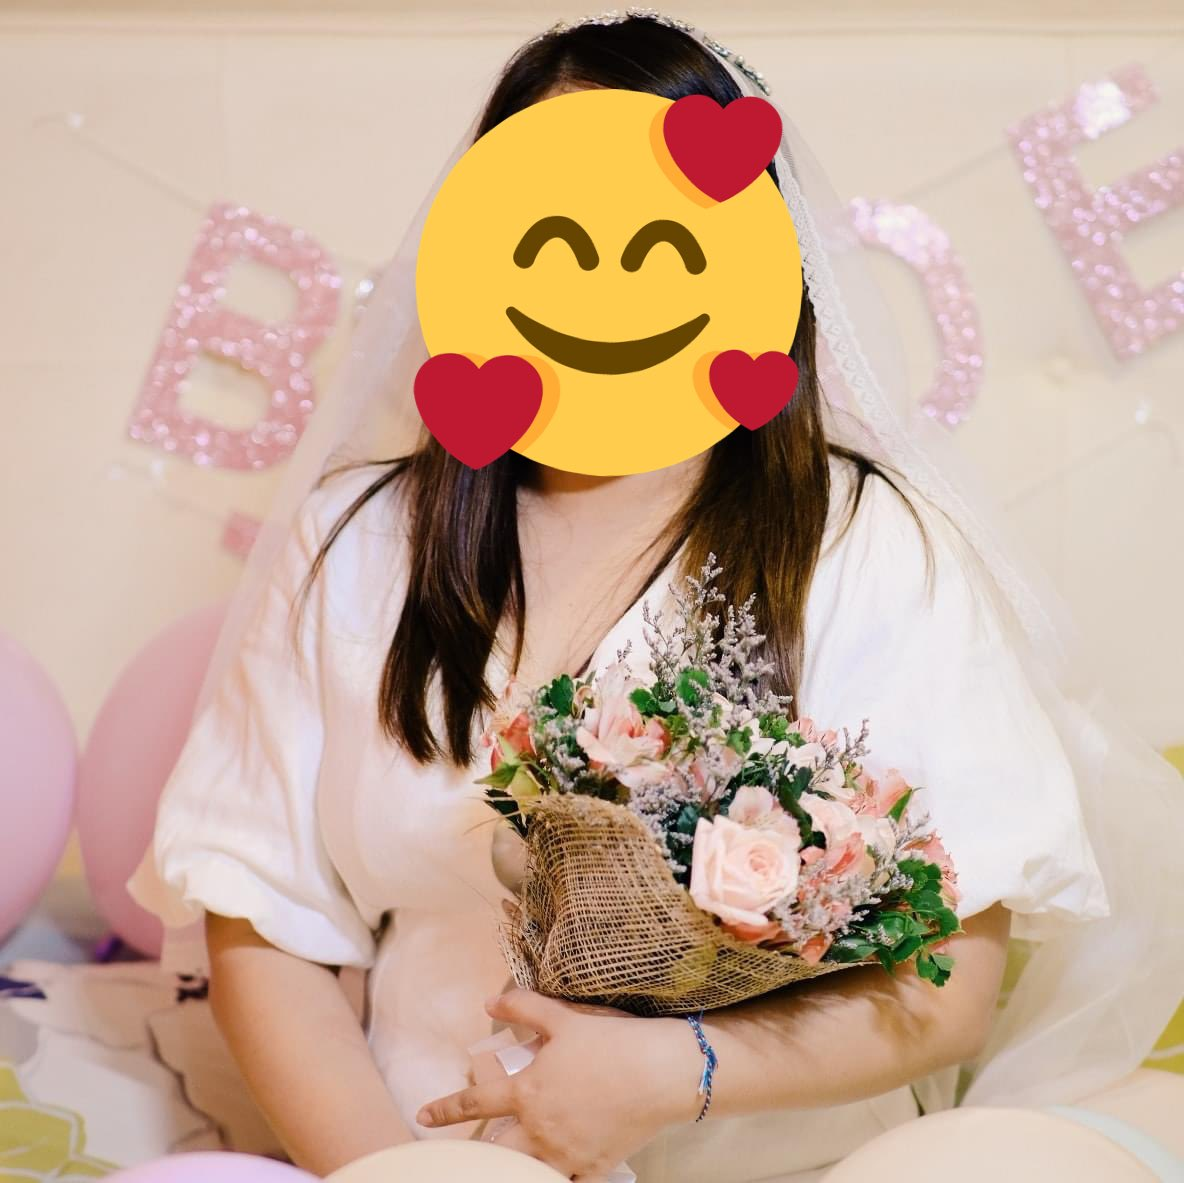 Your girl is getting married in a few more days!!! 😅  cc: @JAYBDEF___ @real_Kimyugyeom @marktuan @JacksonWang852 @GOTYJ_Ars_Vita @BamBam1A